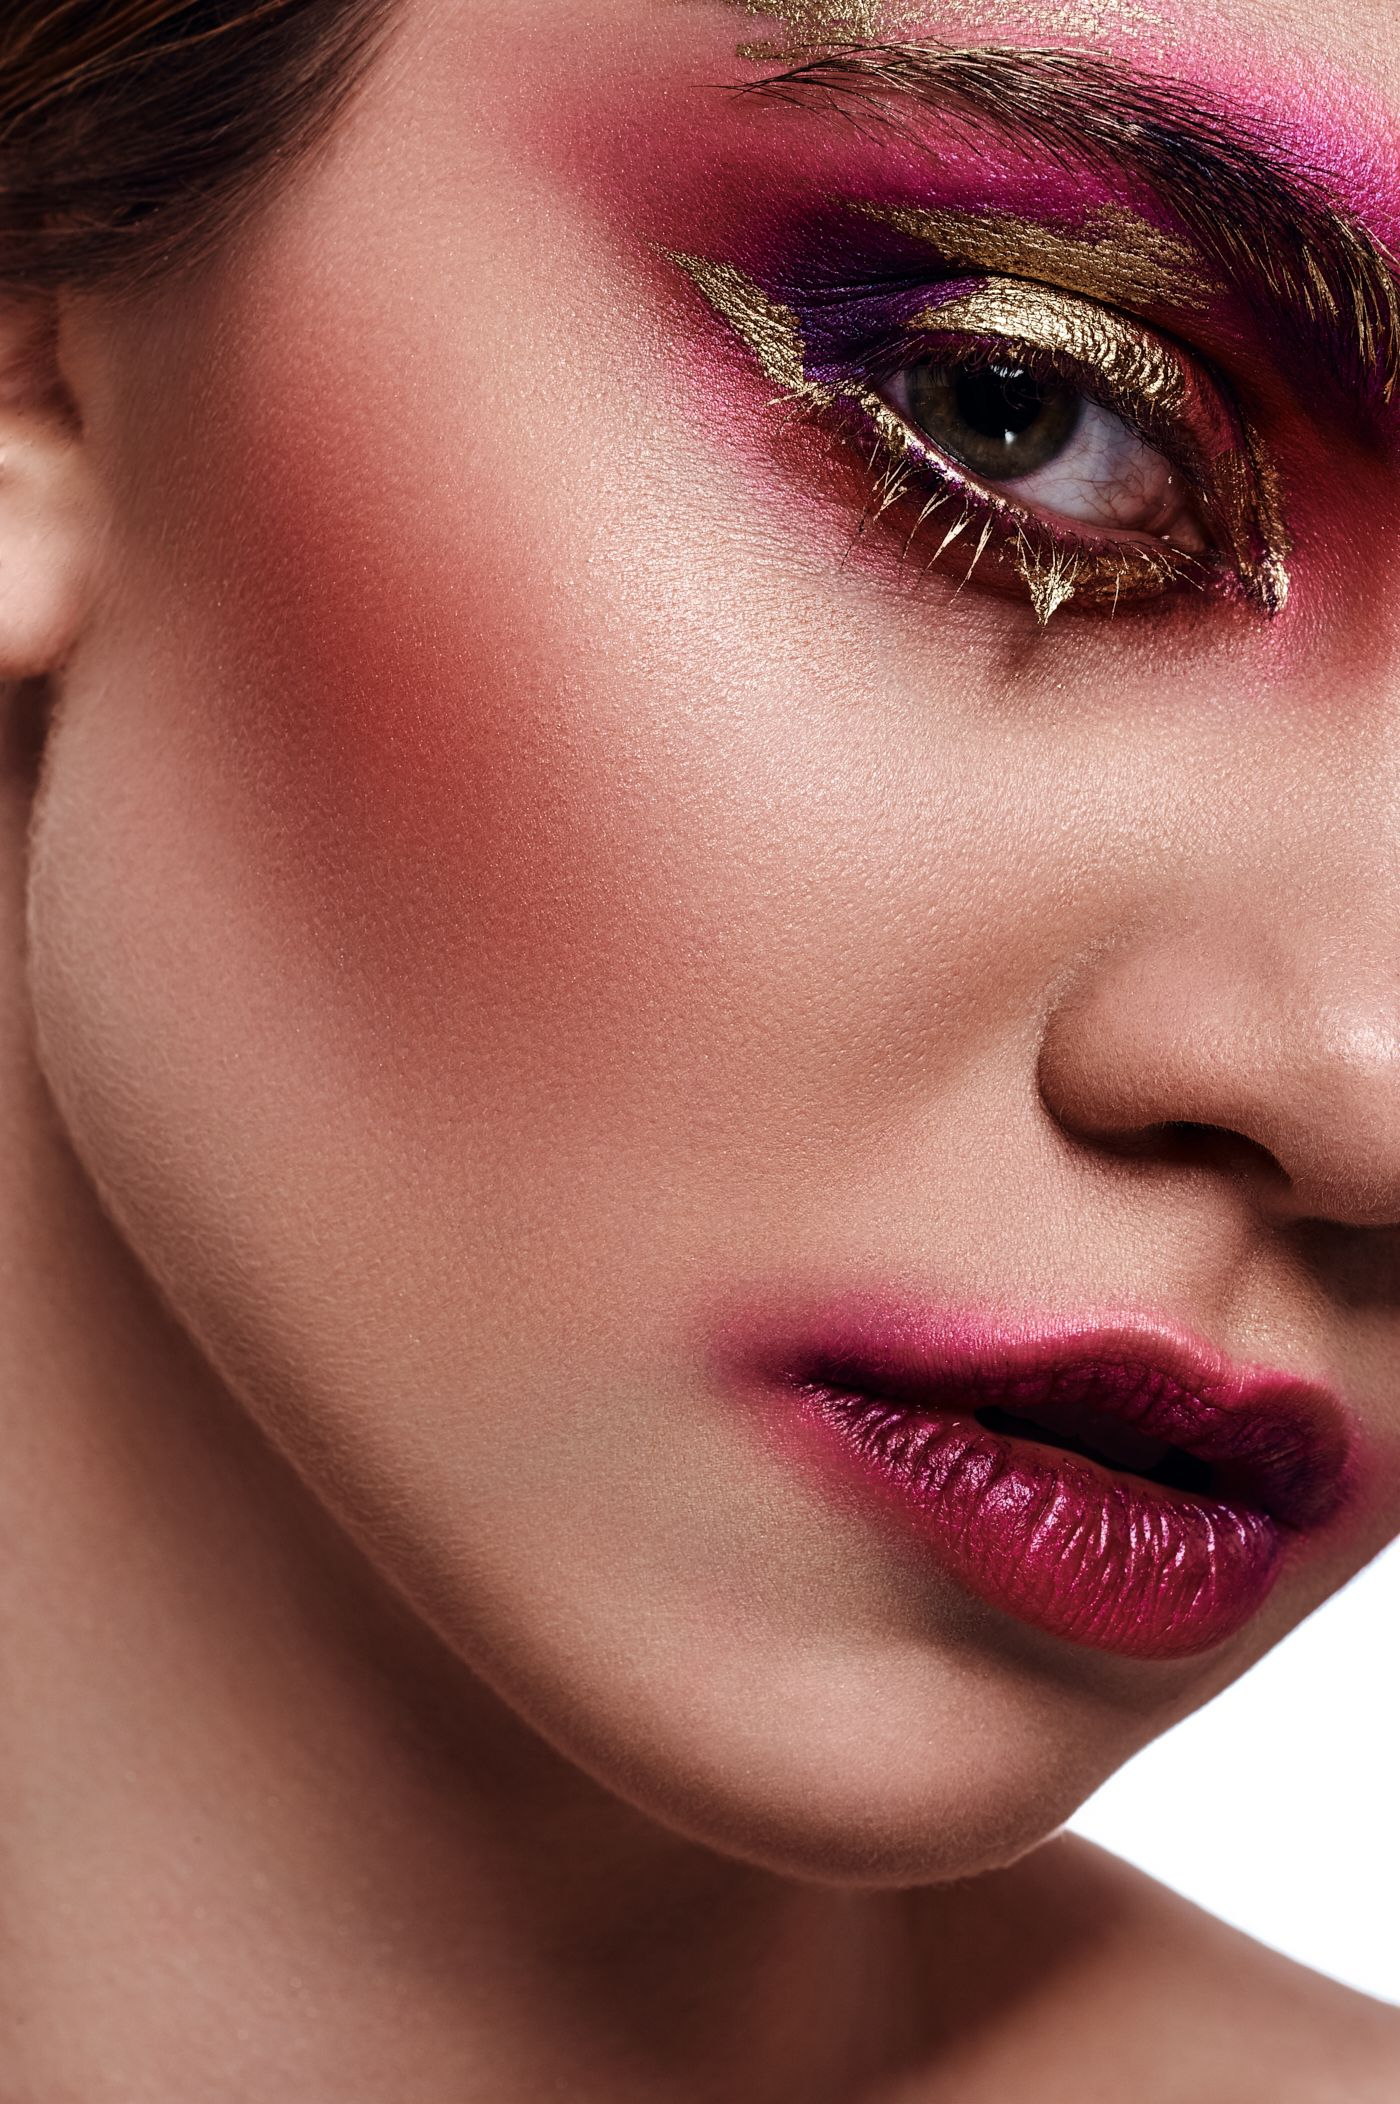 Beauty young Woman with pink Makeup on her Lips and